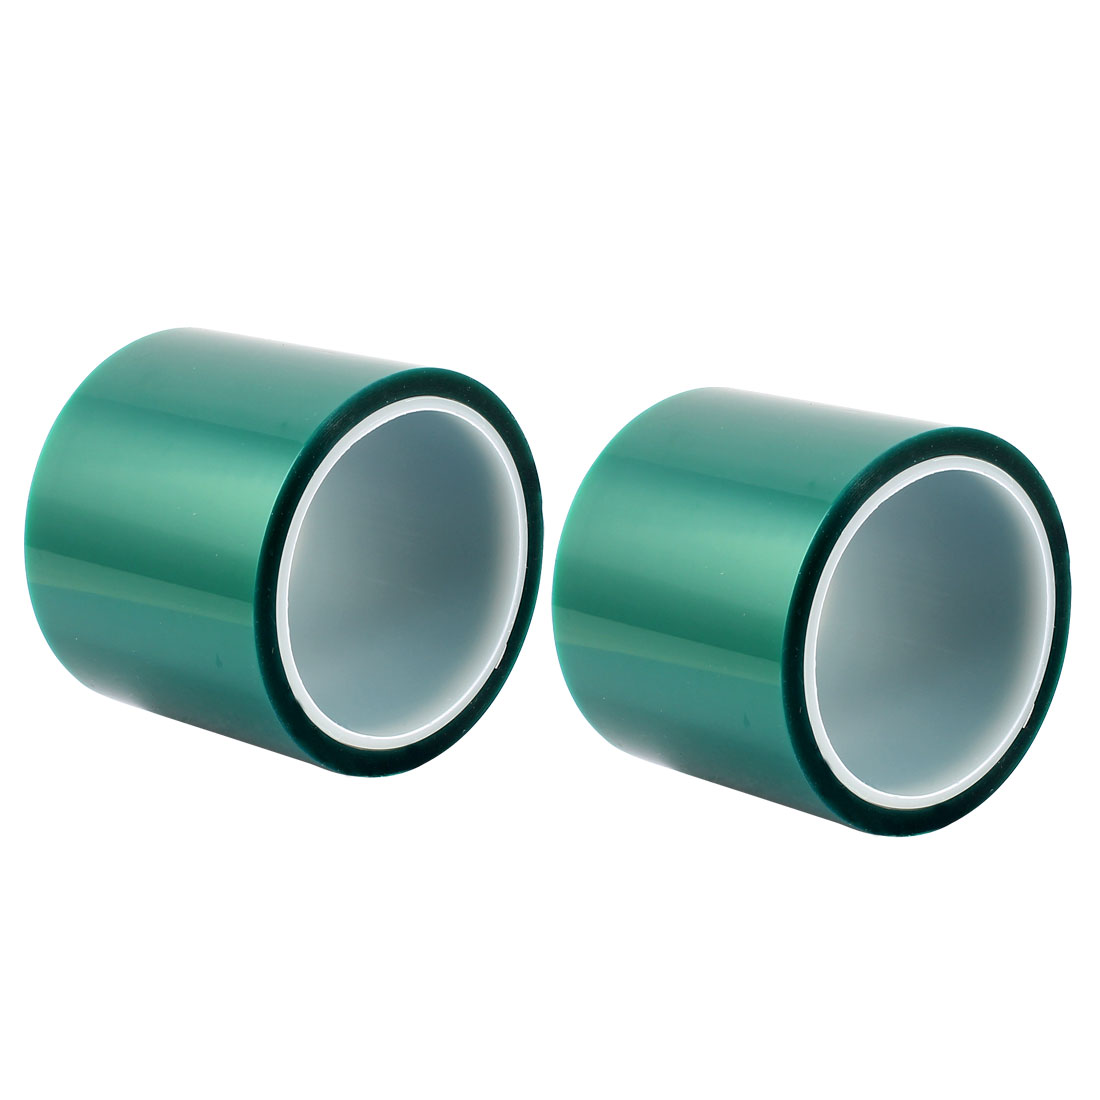 2pcs 80mm Width 33M Long Green PET High Temperature Heat Resistant PCB Solder Tape